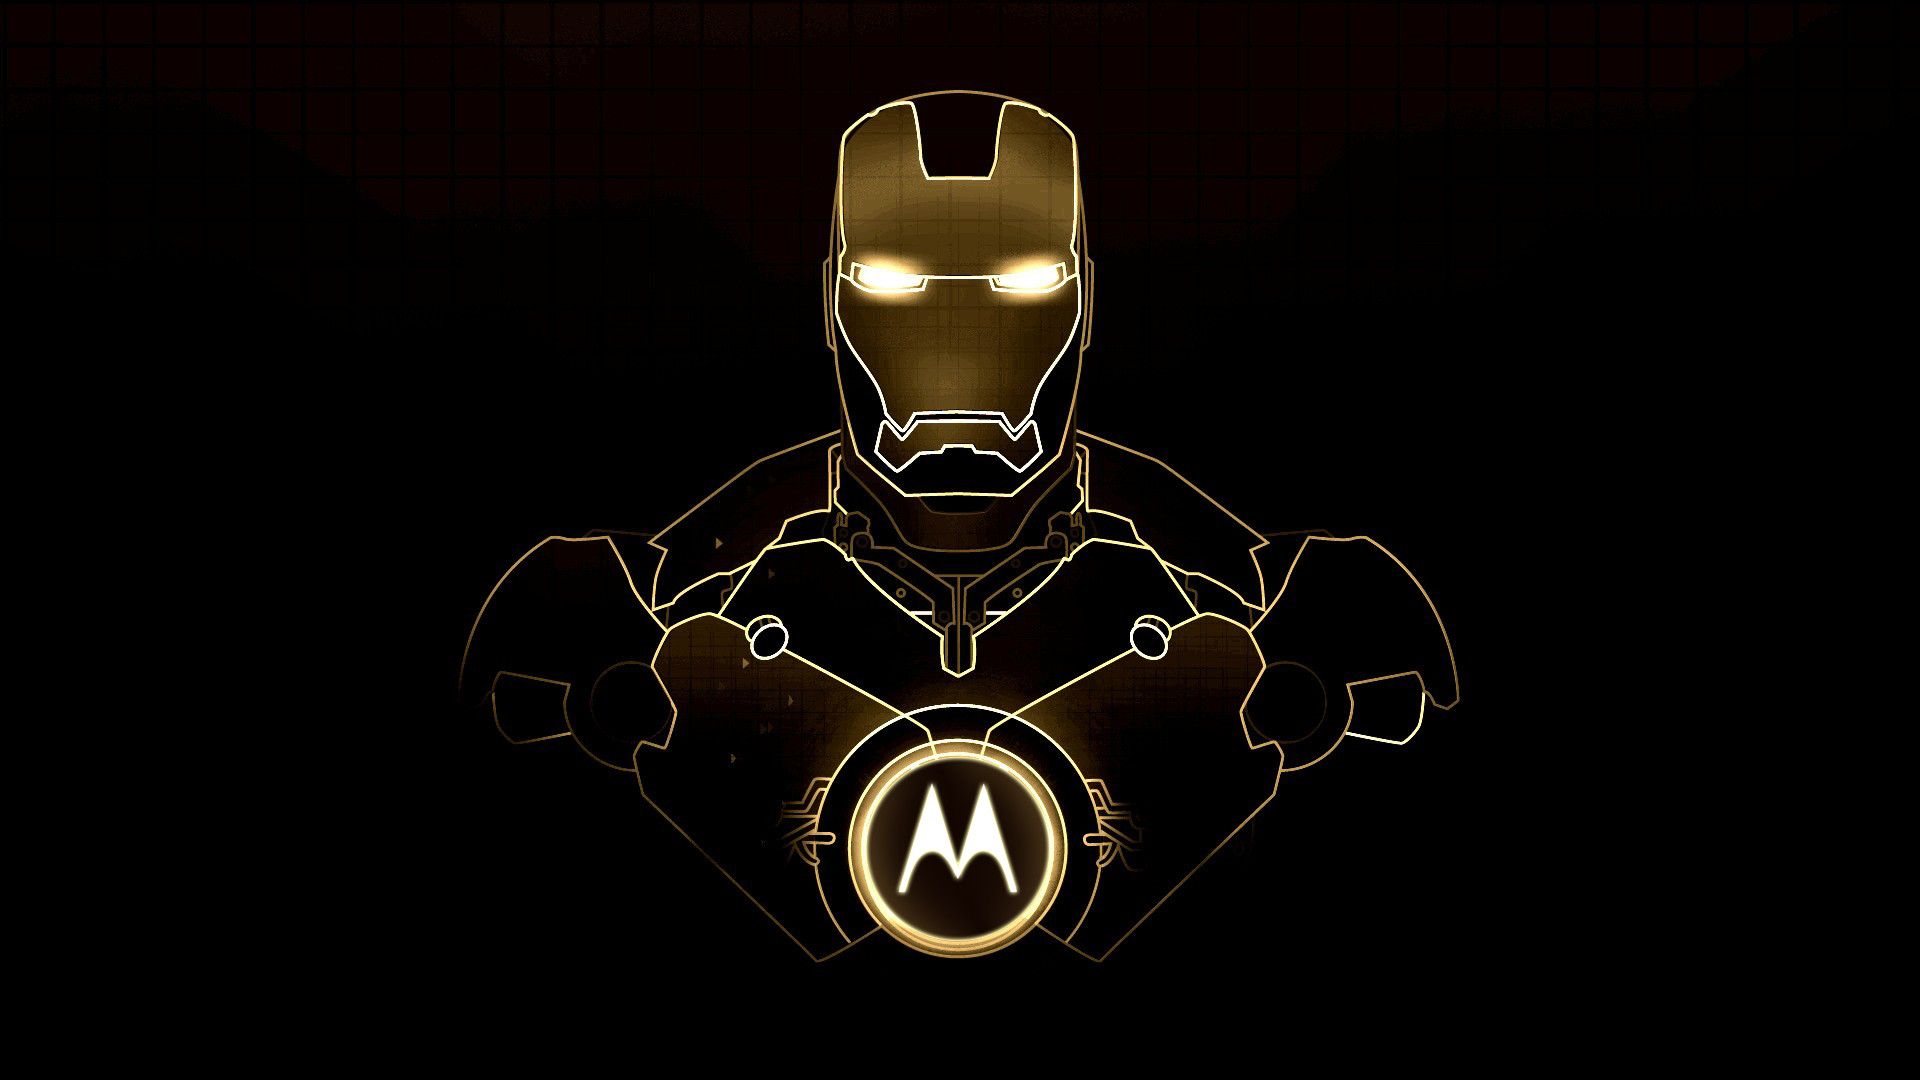 Motorola Wallpapers 1